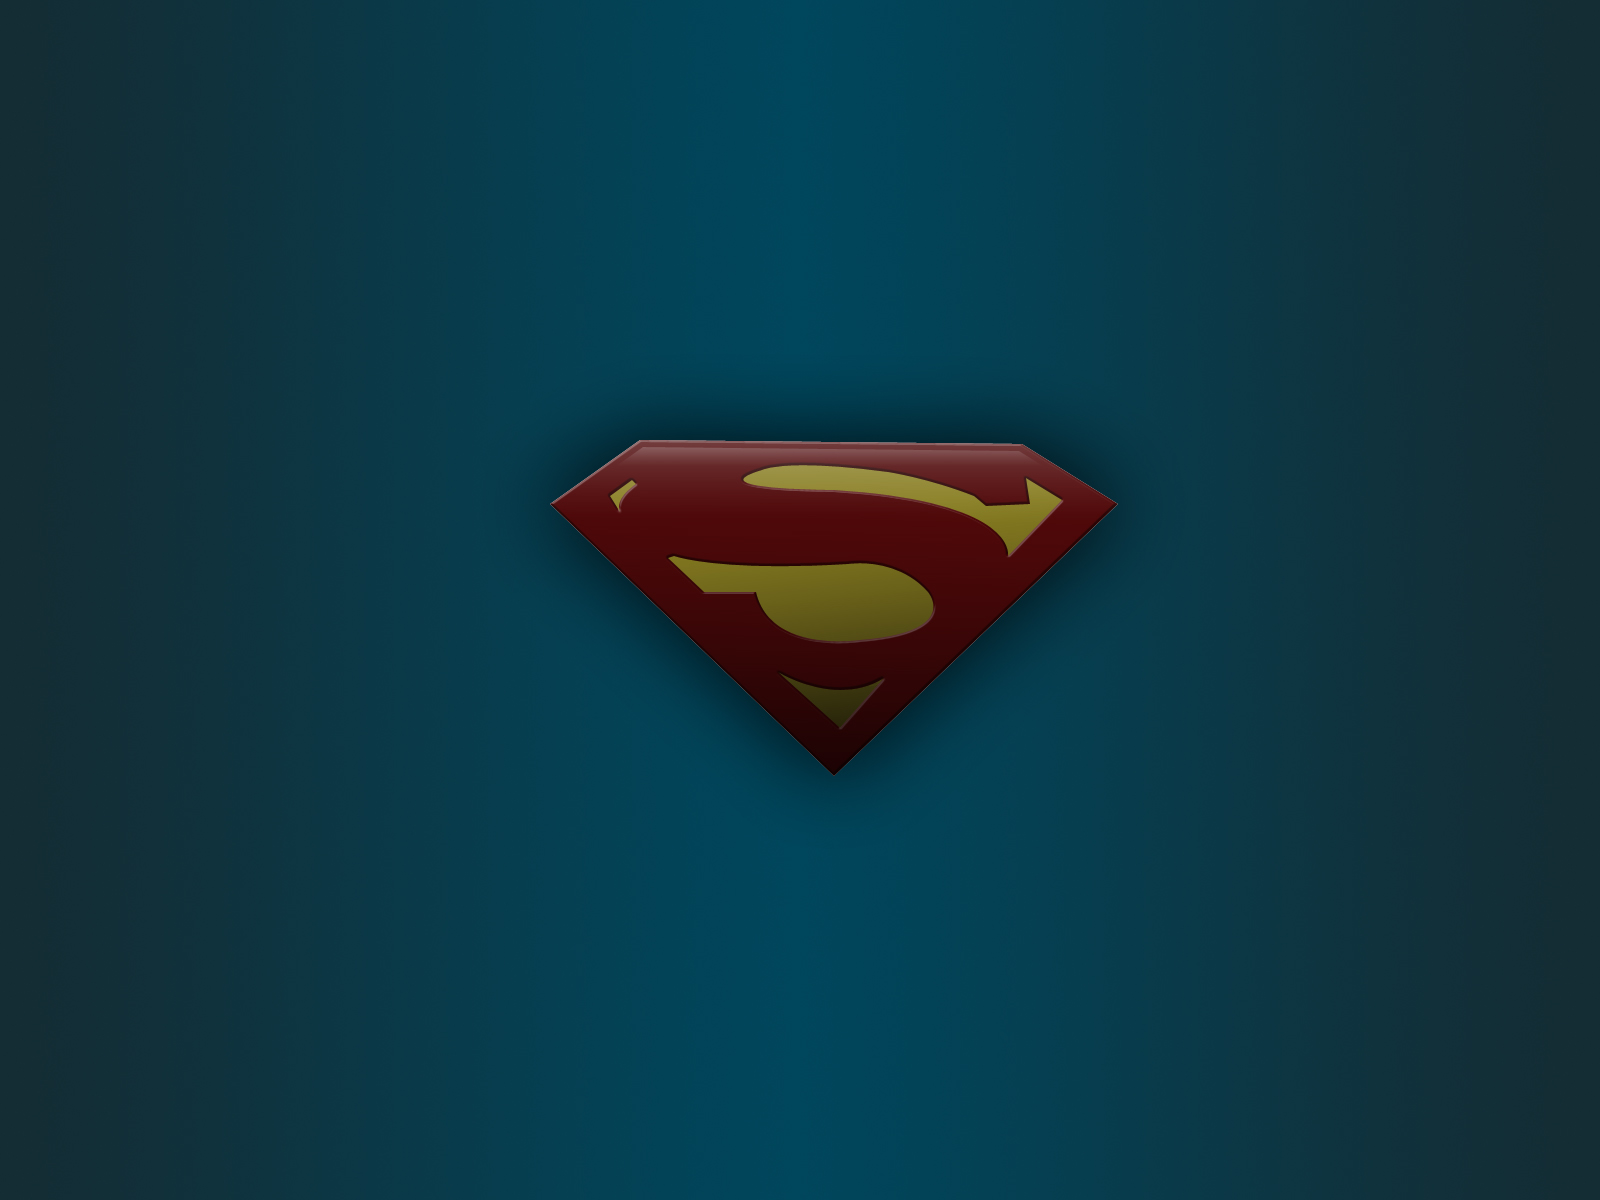 superman logo free wallpaper - photo #18